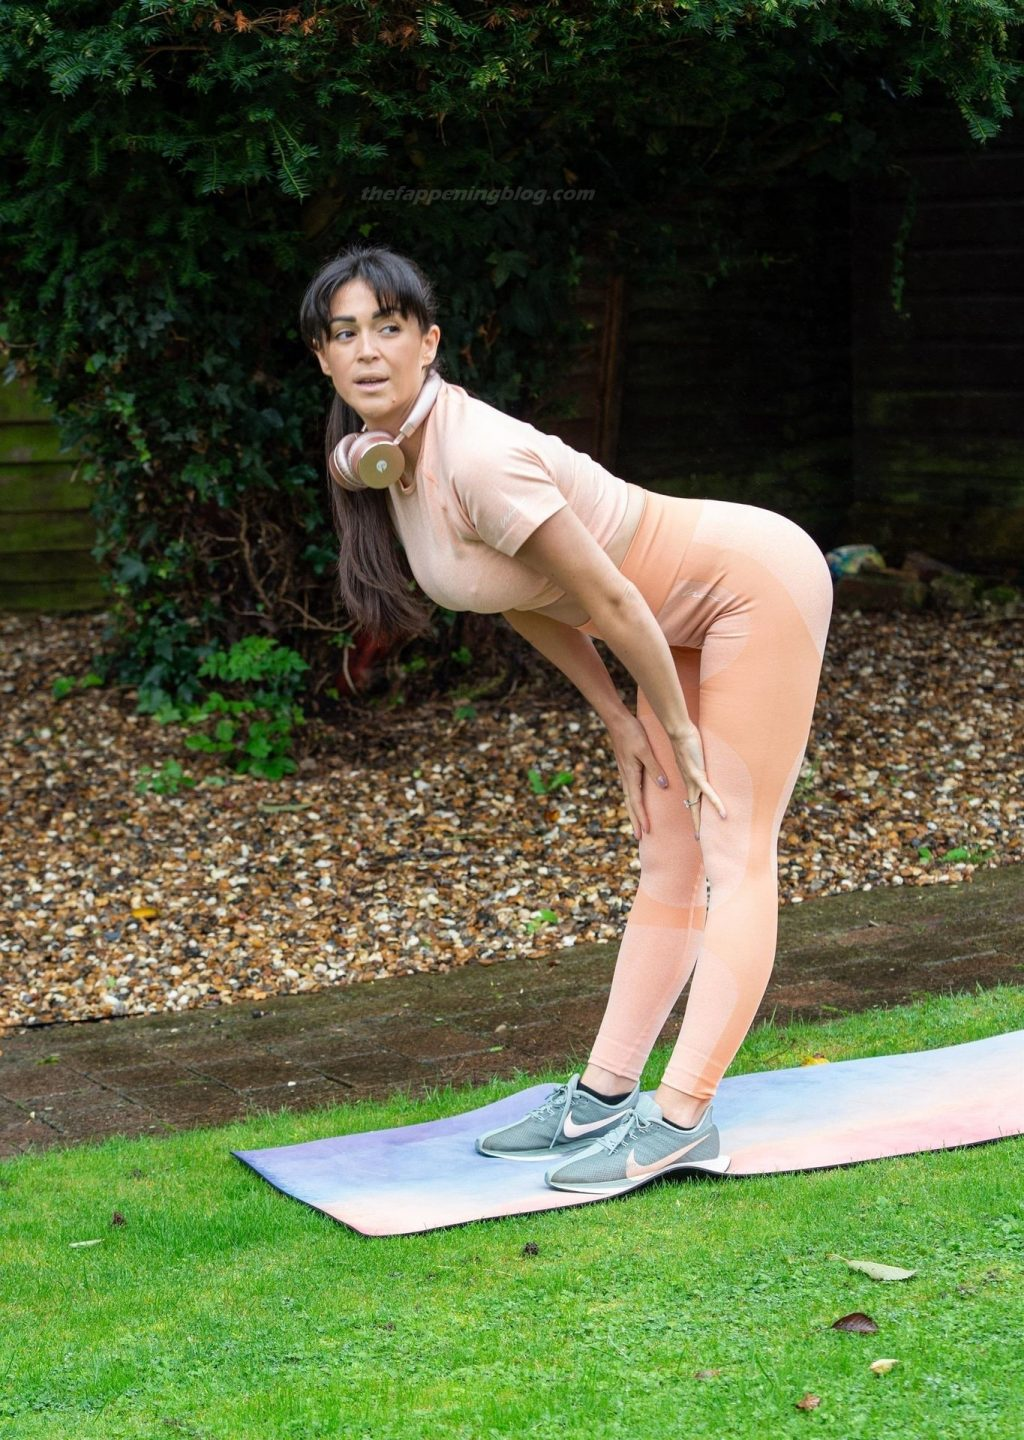 Casey Batchelor Shows Off Her Recent Weight Loss as She Exercises (9 Photos)